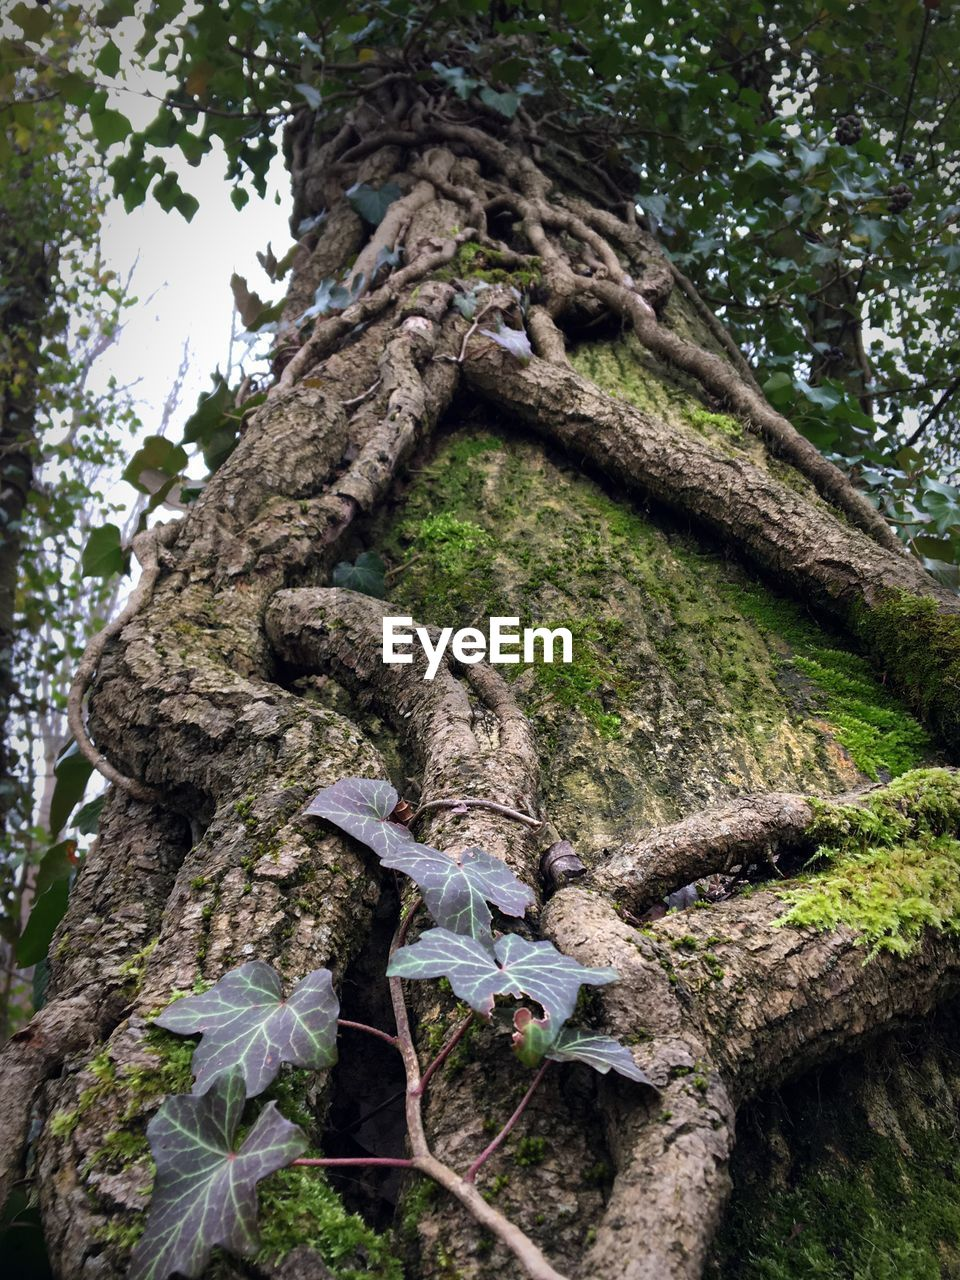 tree, tree trunk, day, low angle view, outdoors, nature, growth, no people, branch, sculpture, statue, forest, beauty in nature, dead tree, close-up